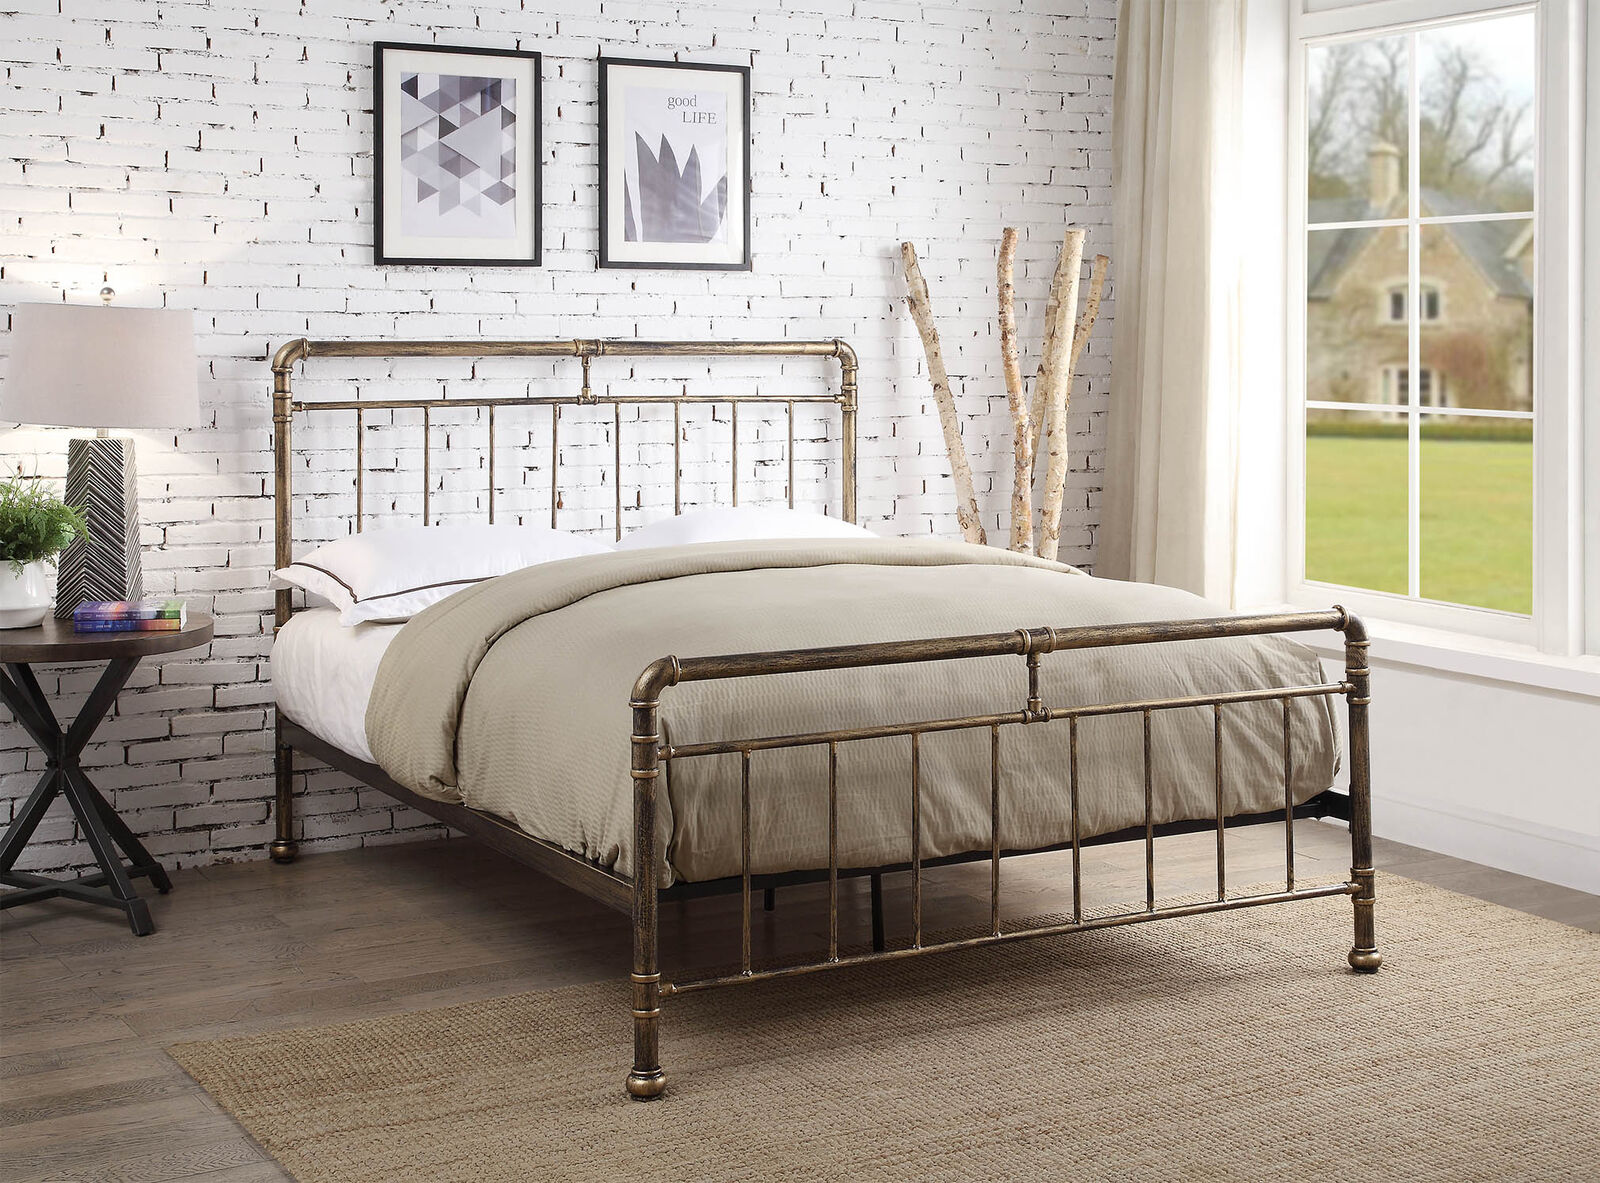 Detroit Metal Industrial Bed Frame Scaffold Pipe Copper Brass Various Sizes Ebay